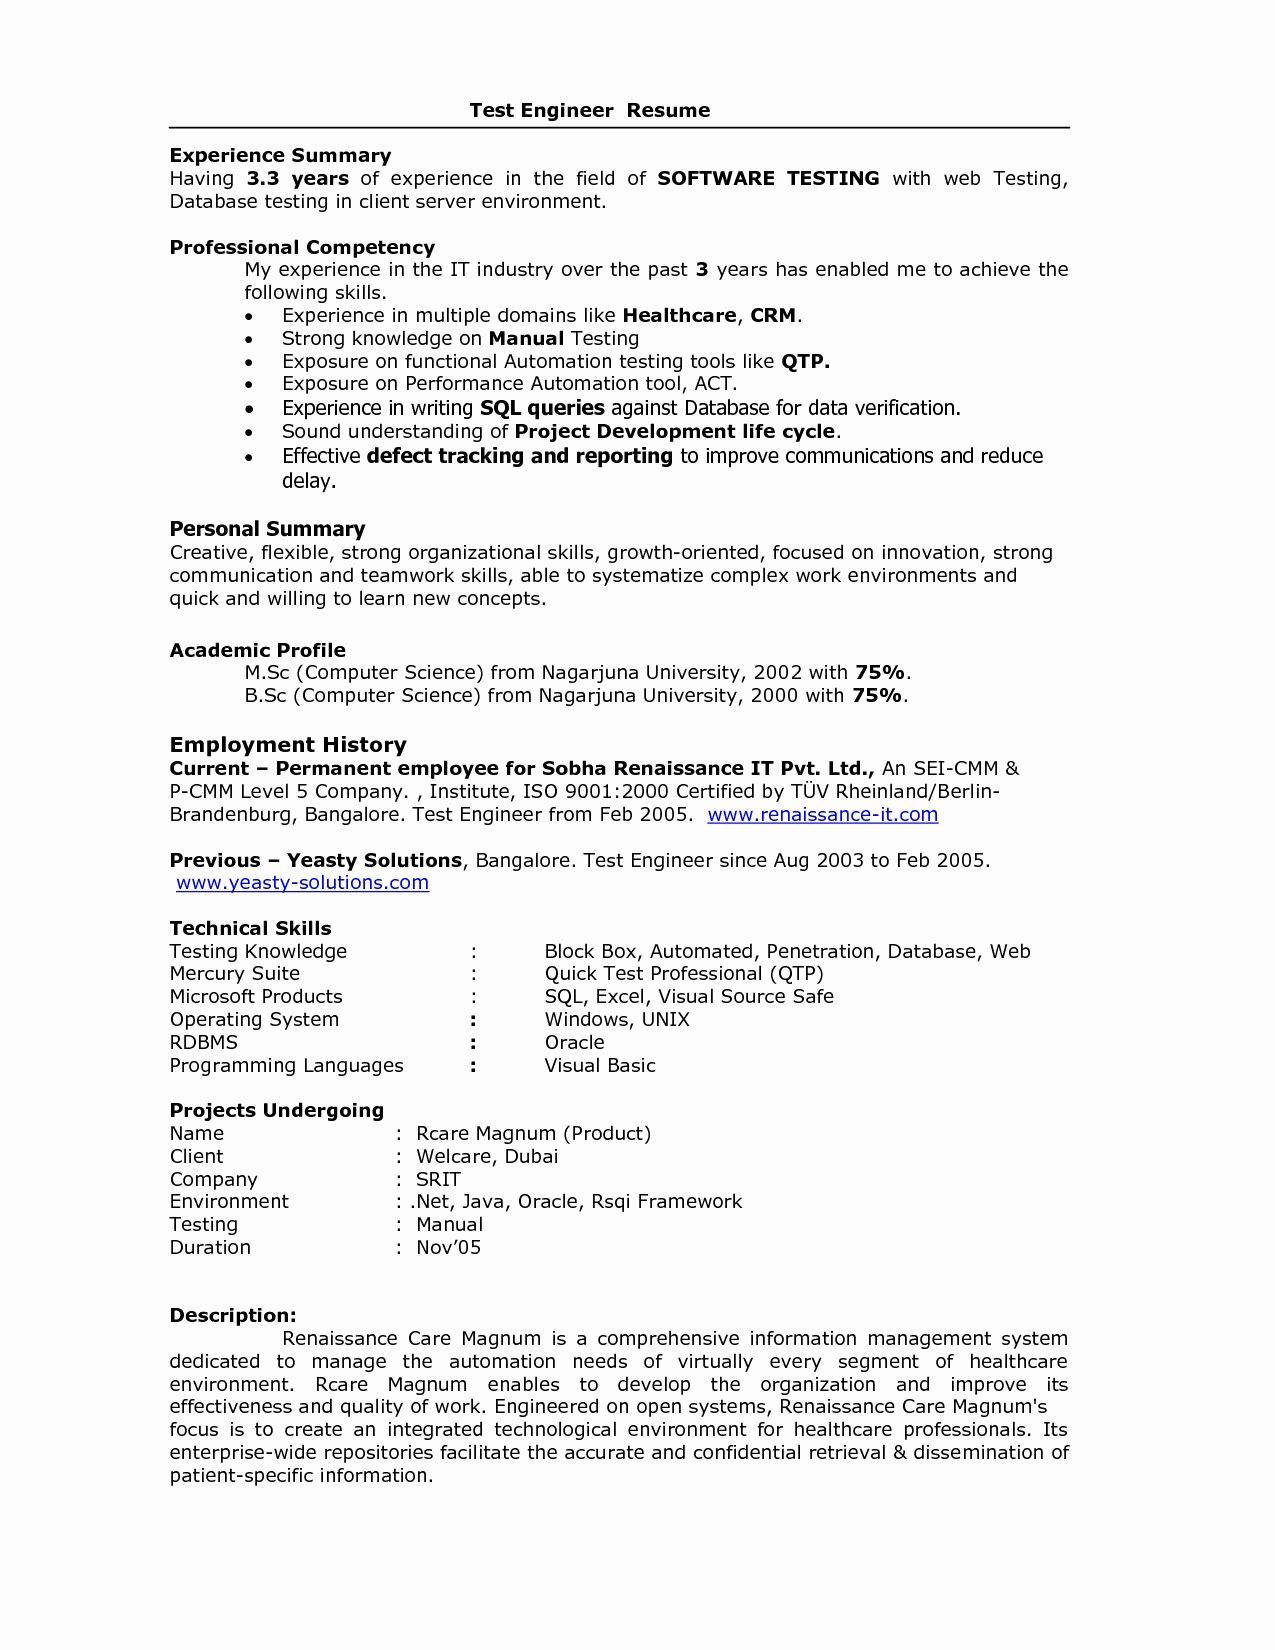 resume format for years experience in testing best software sample south indian executive Resume South Indian Cook Resume Format